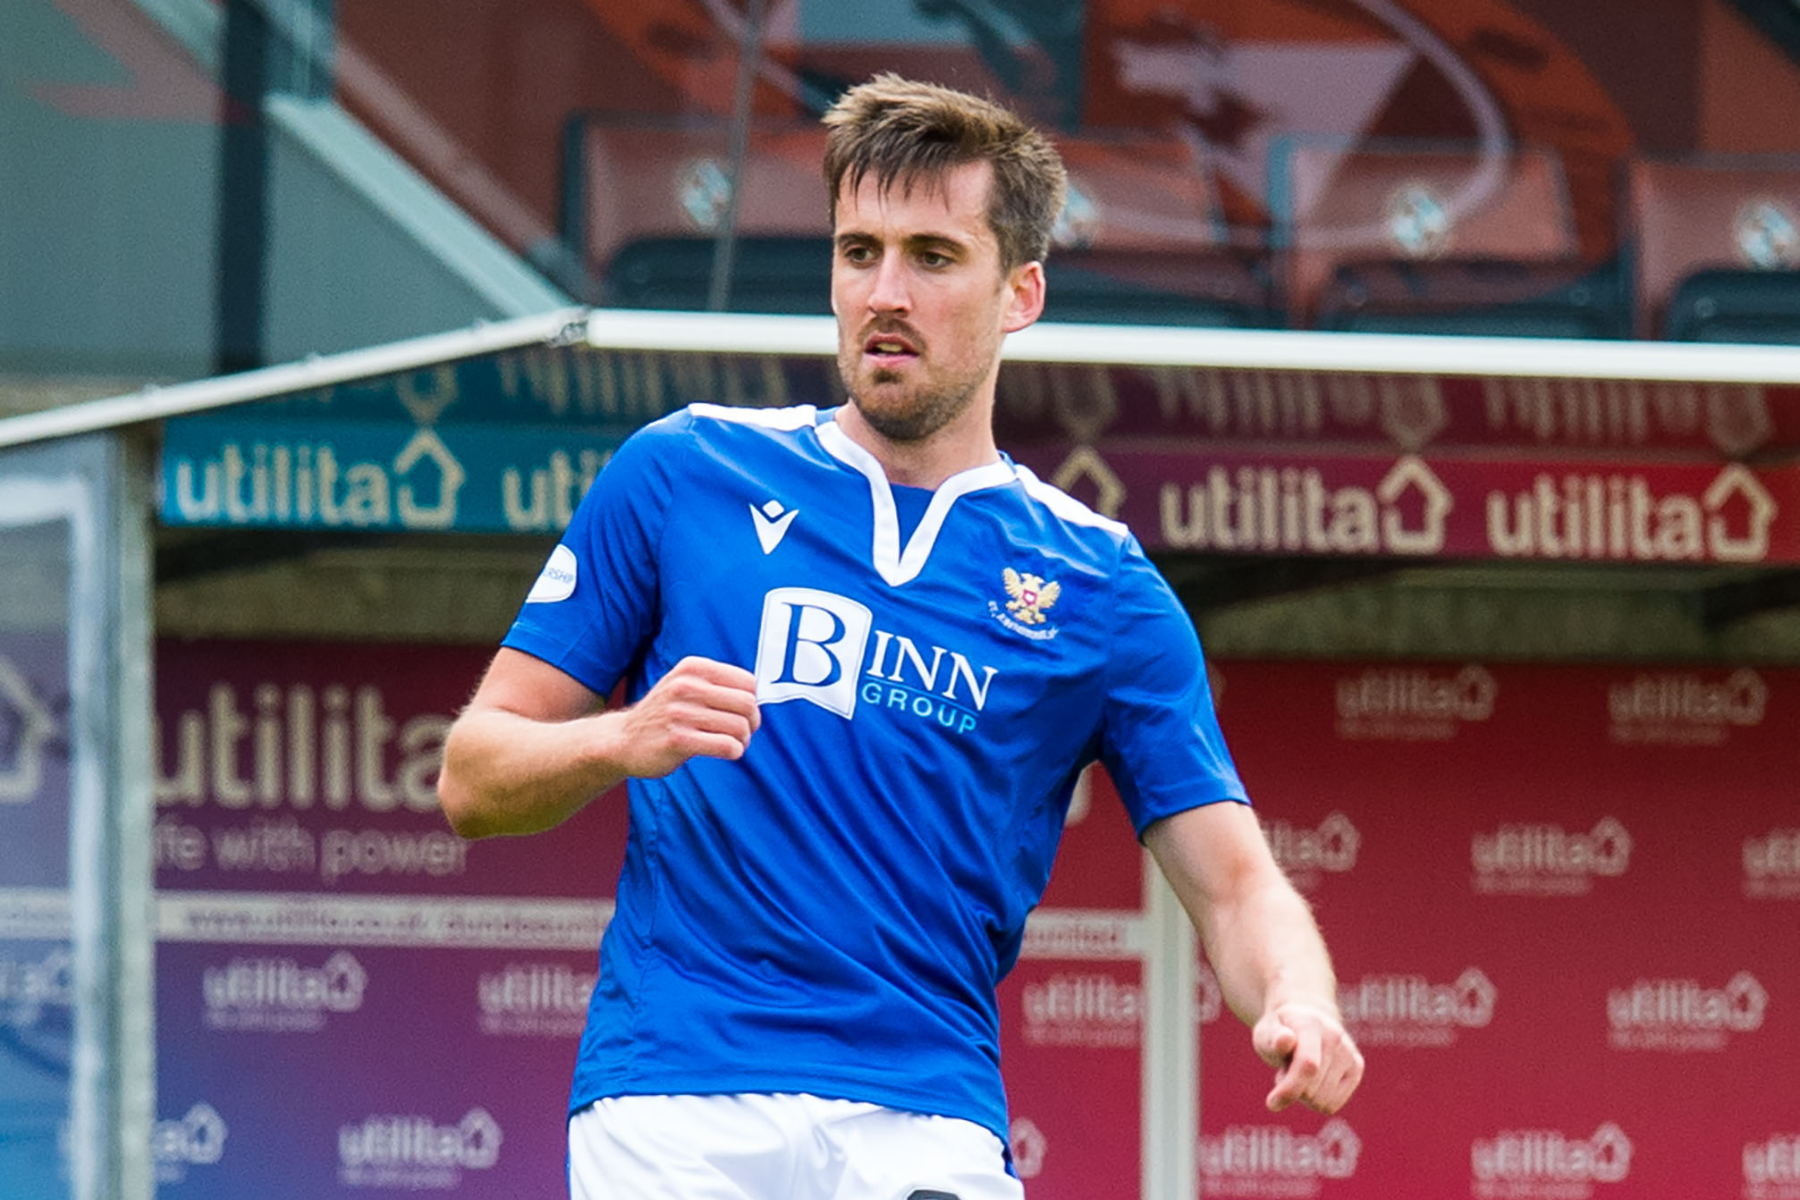 St Johnstone defender Callum Booth delighted to pen contract extension as he looks ahead to Hamilton test